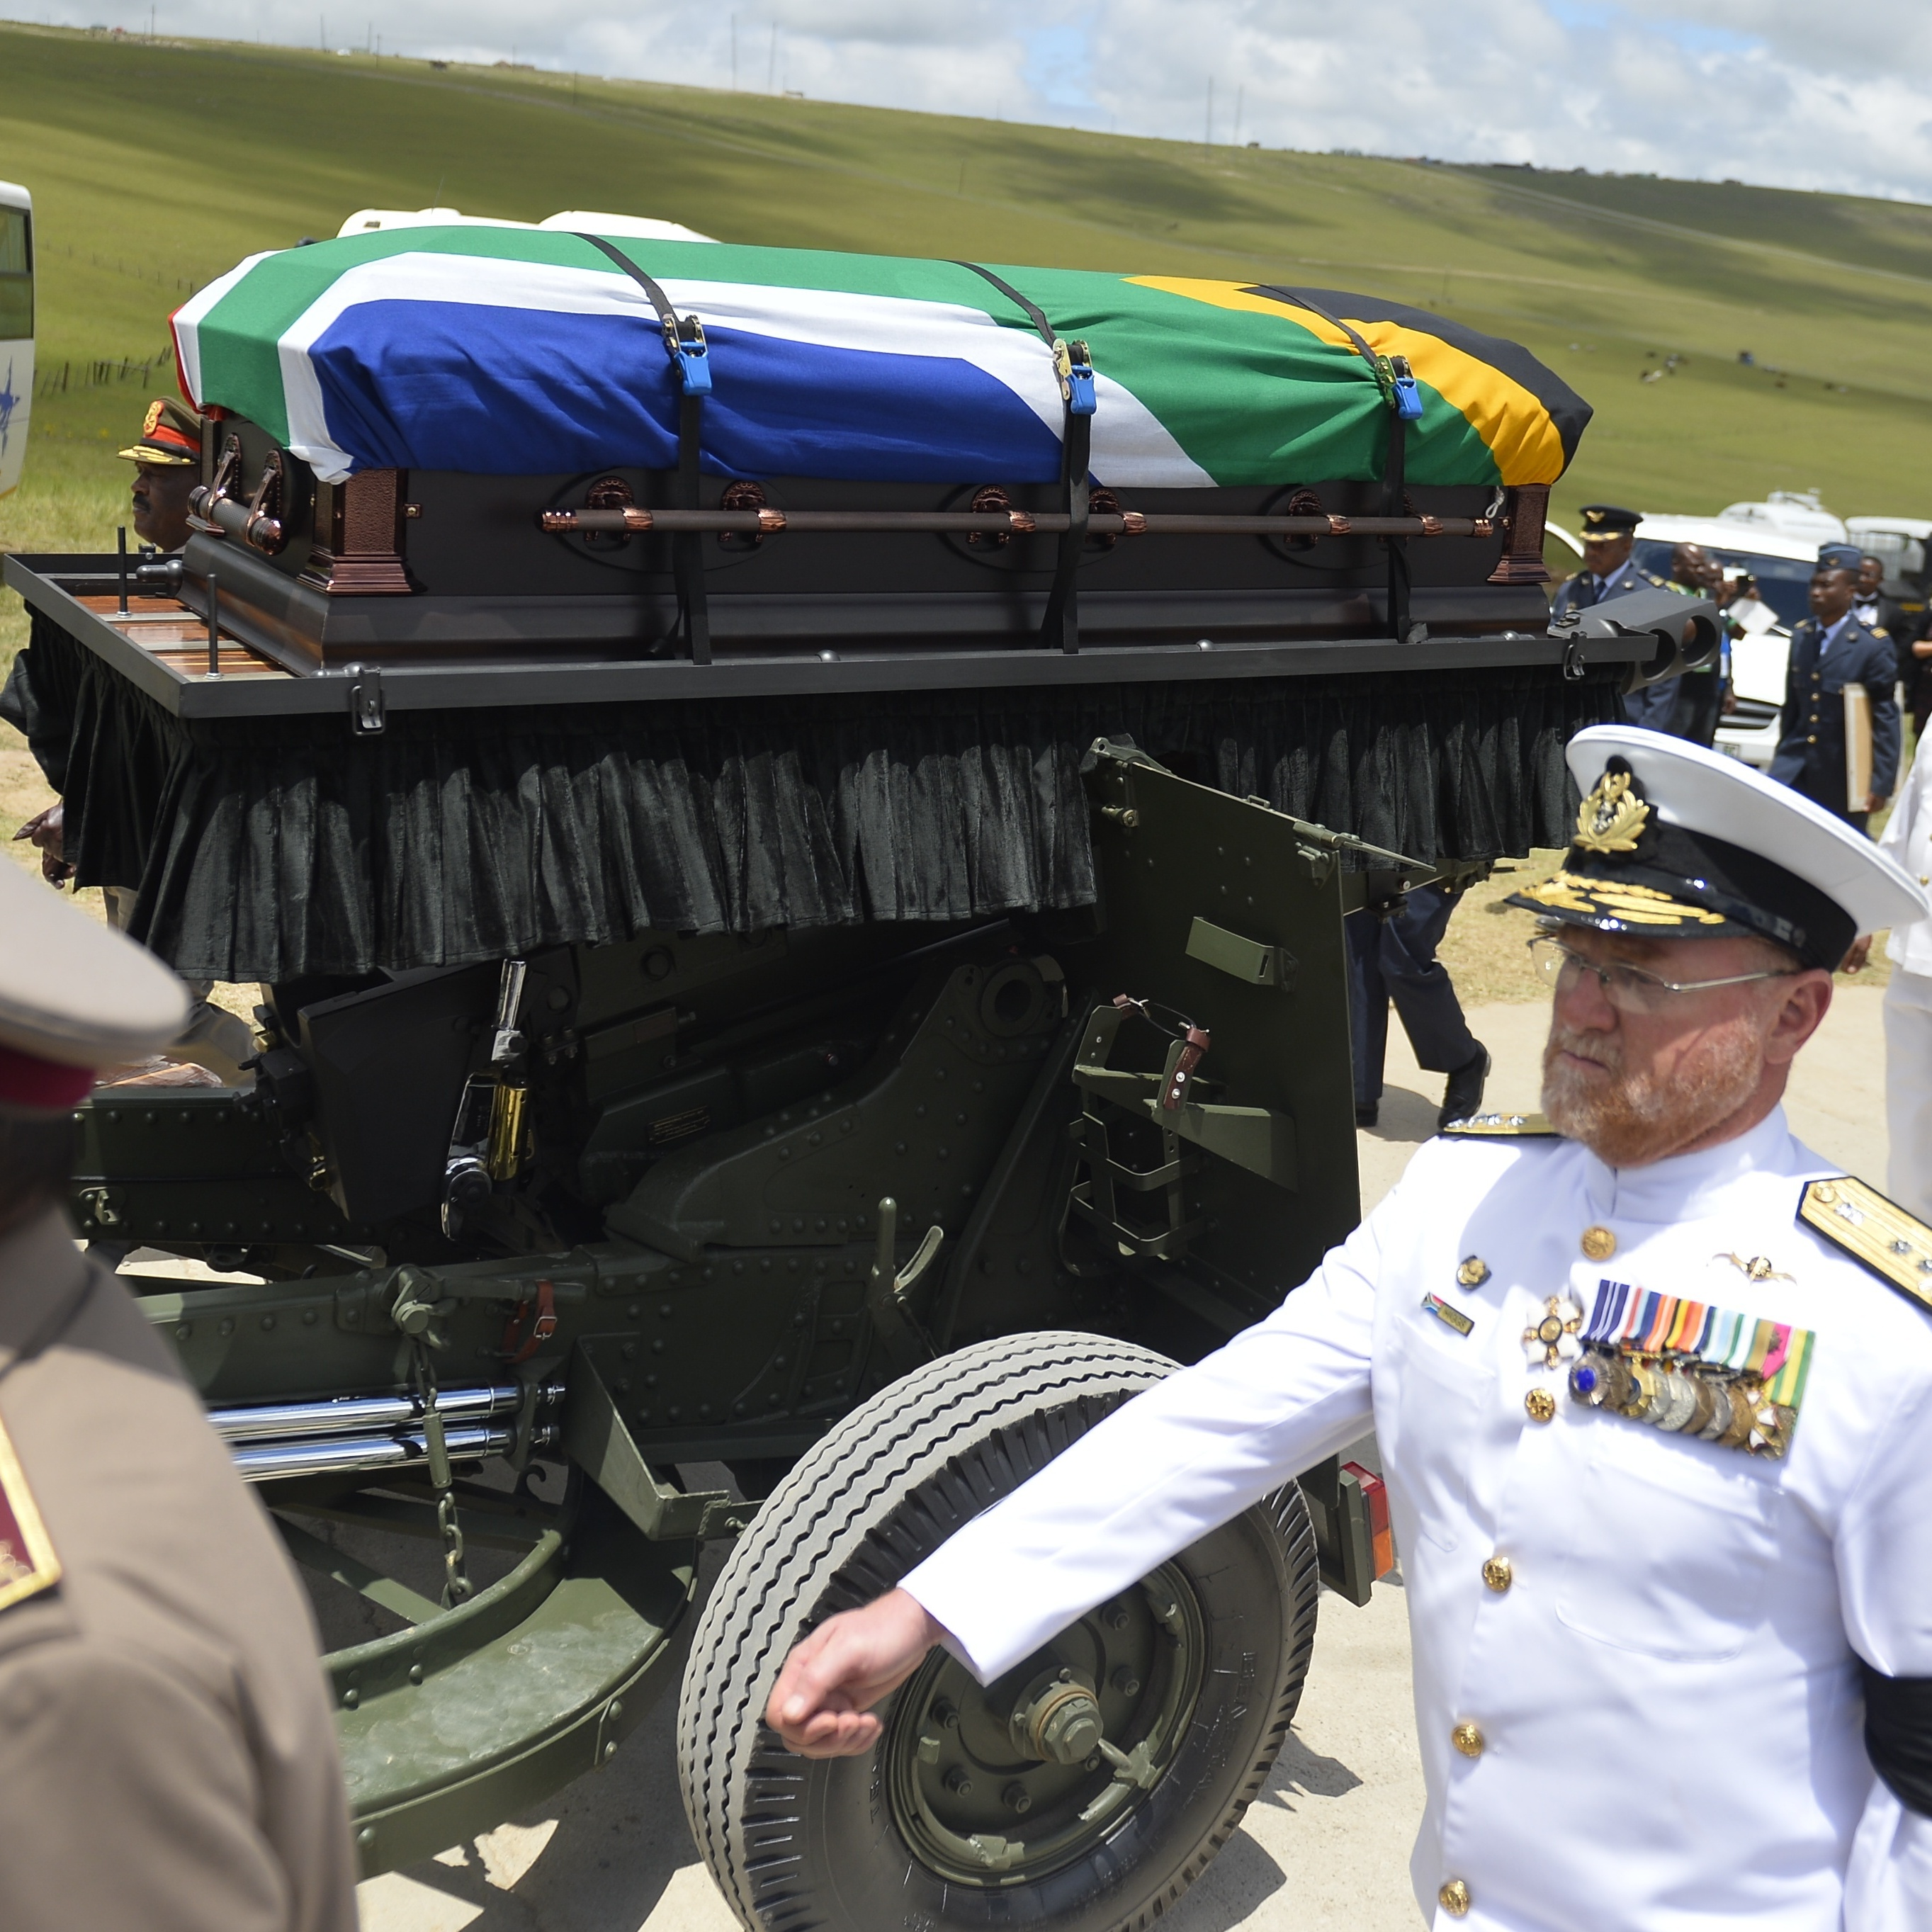 The coffin of South African former president Nelson Mandela is brought on a gun carriage for a traditional burial during his funeral in Qunu on Sunday.